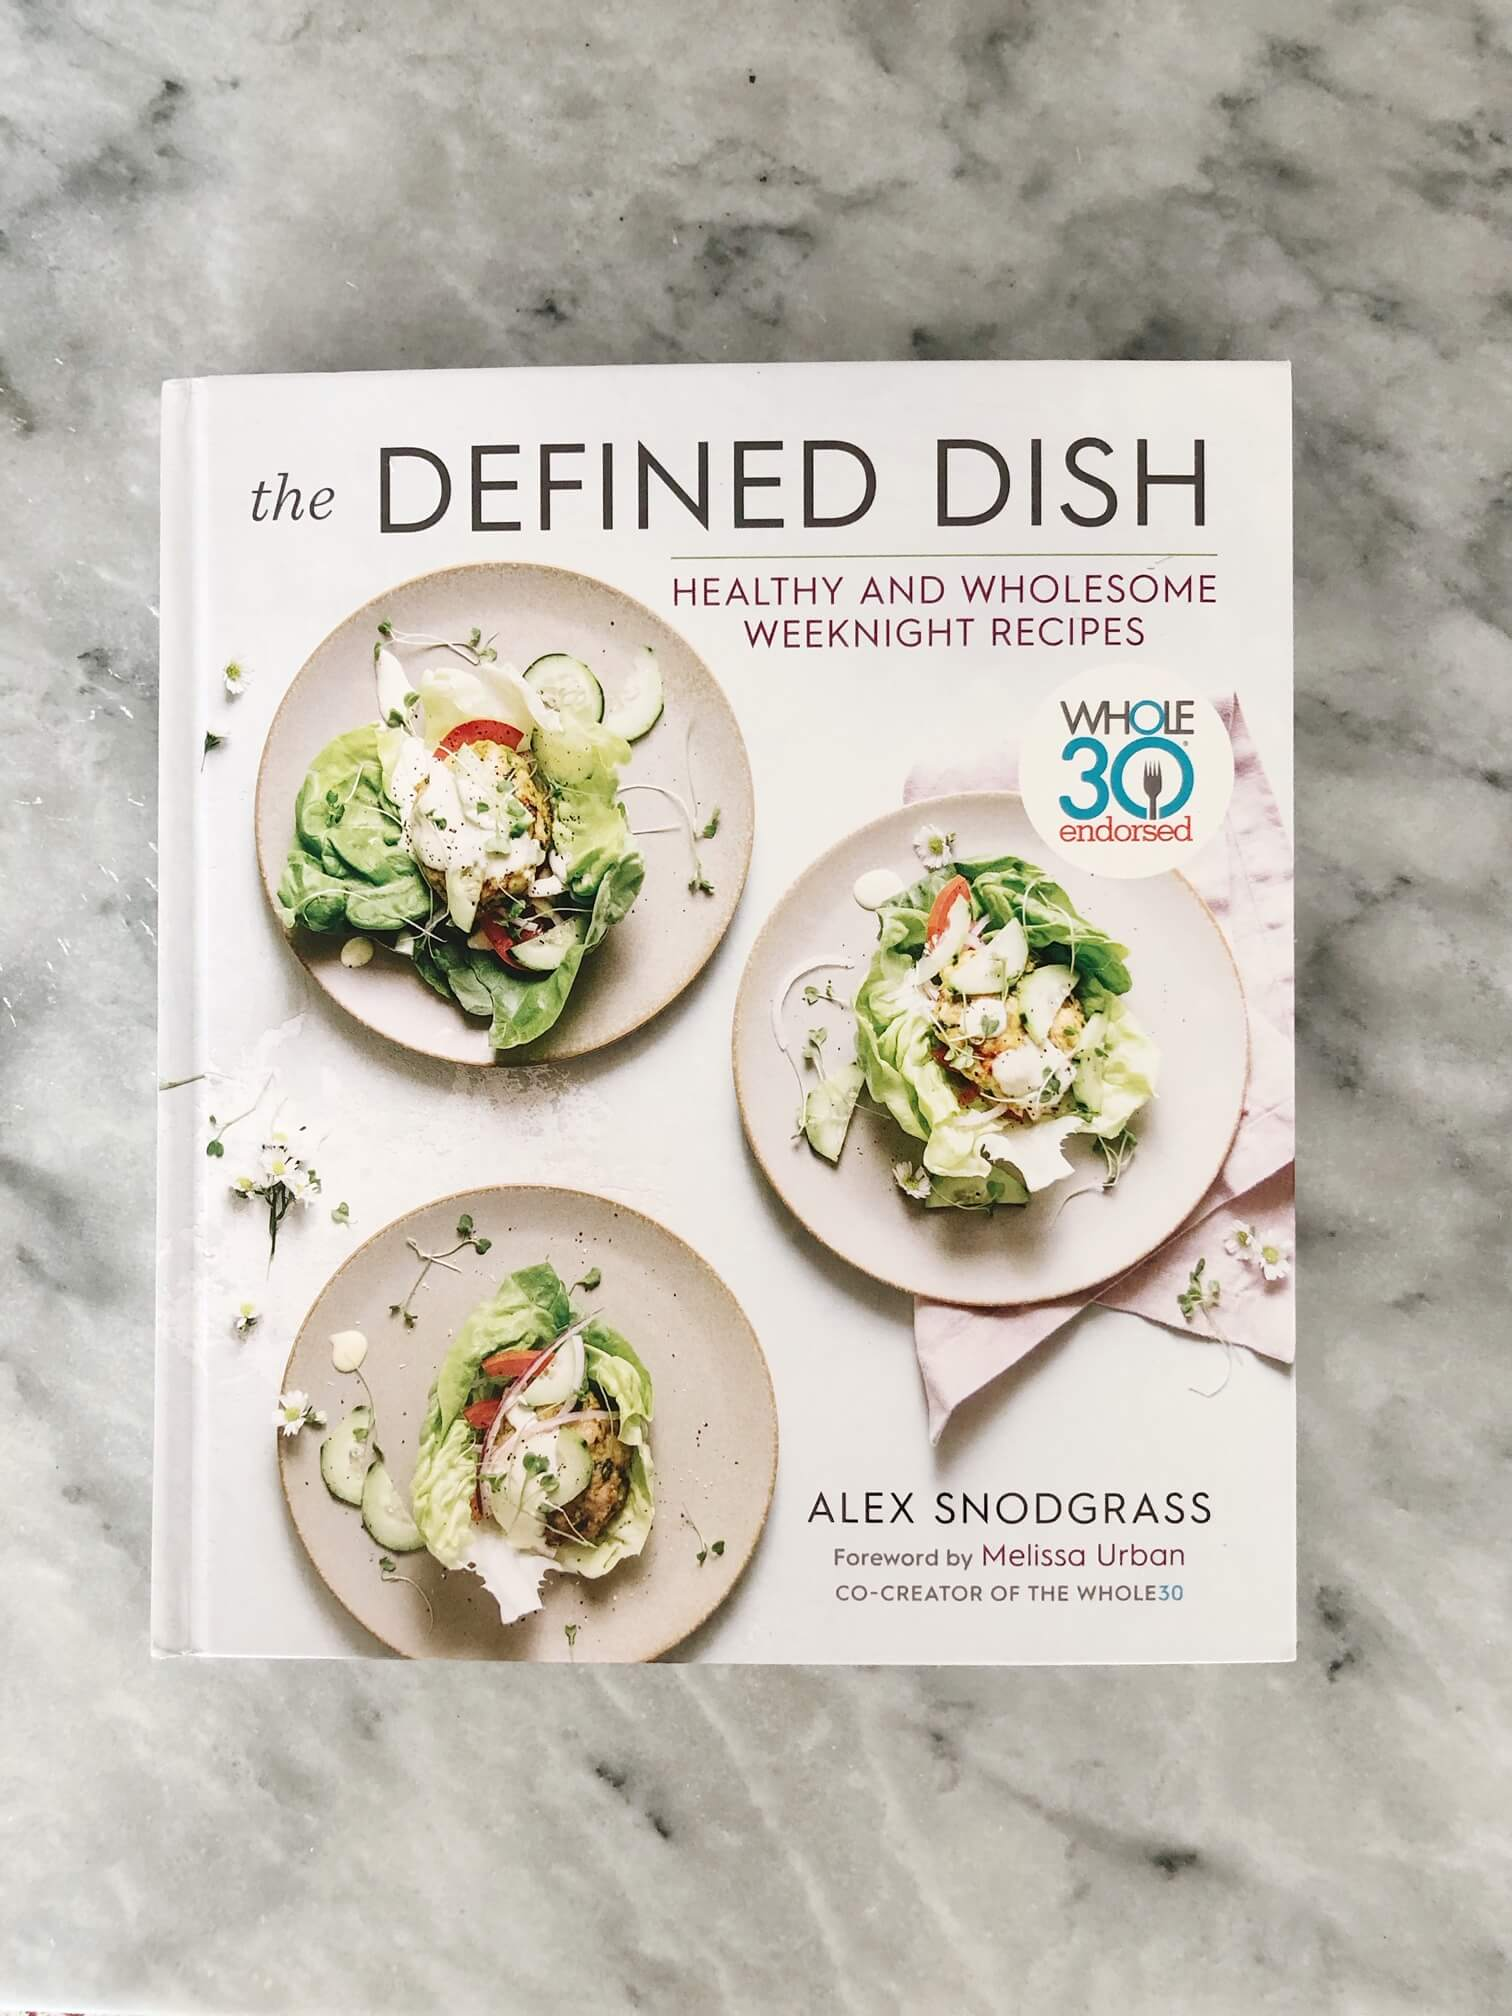 Favorite Recipes from The Defined Dish